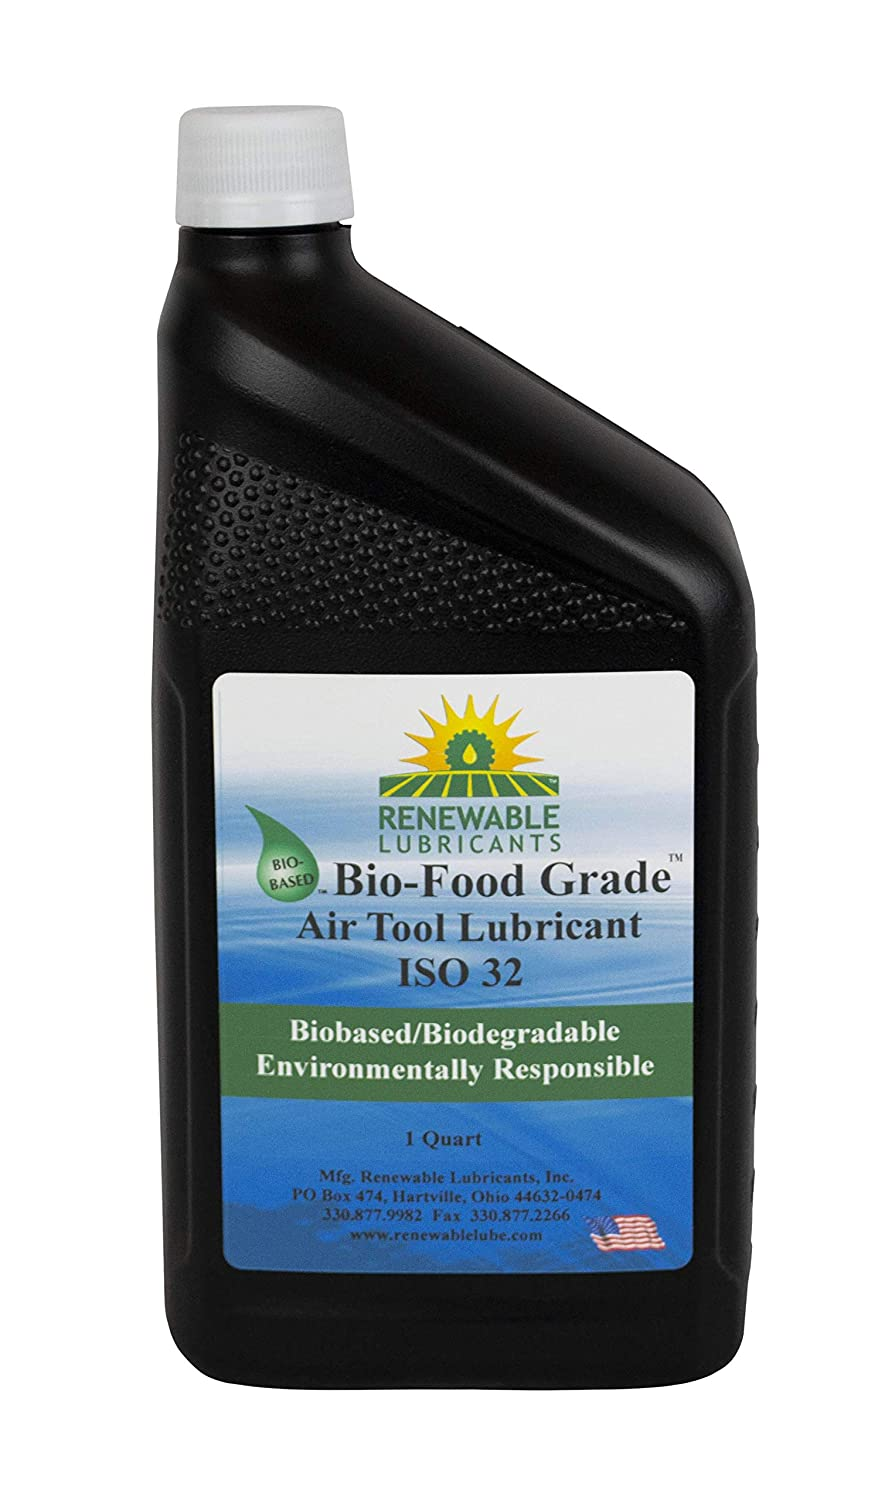 Renewable Lubricants - 87461 Bio-Food Grade ISO 32 Air Tool Lubricant, 1 Quart Bottle